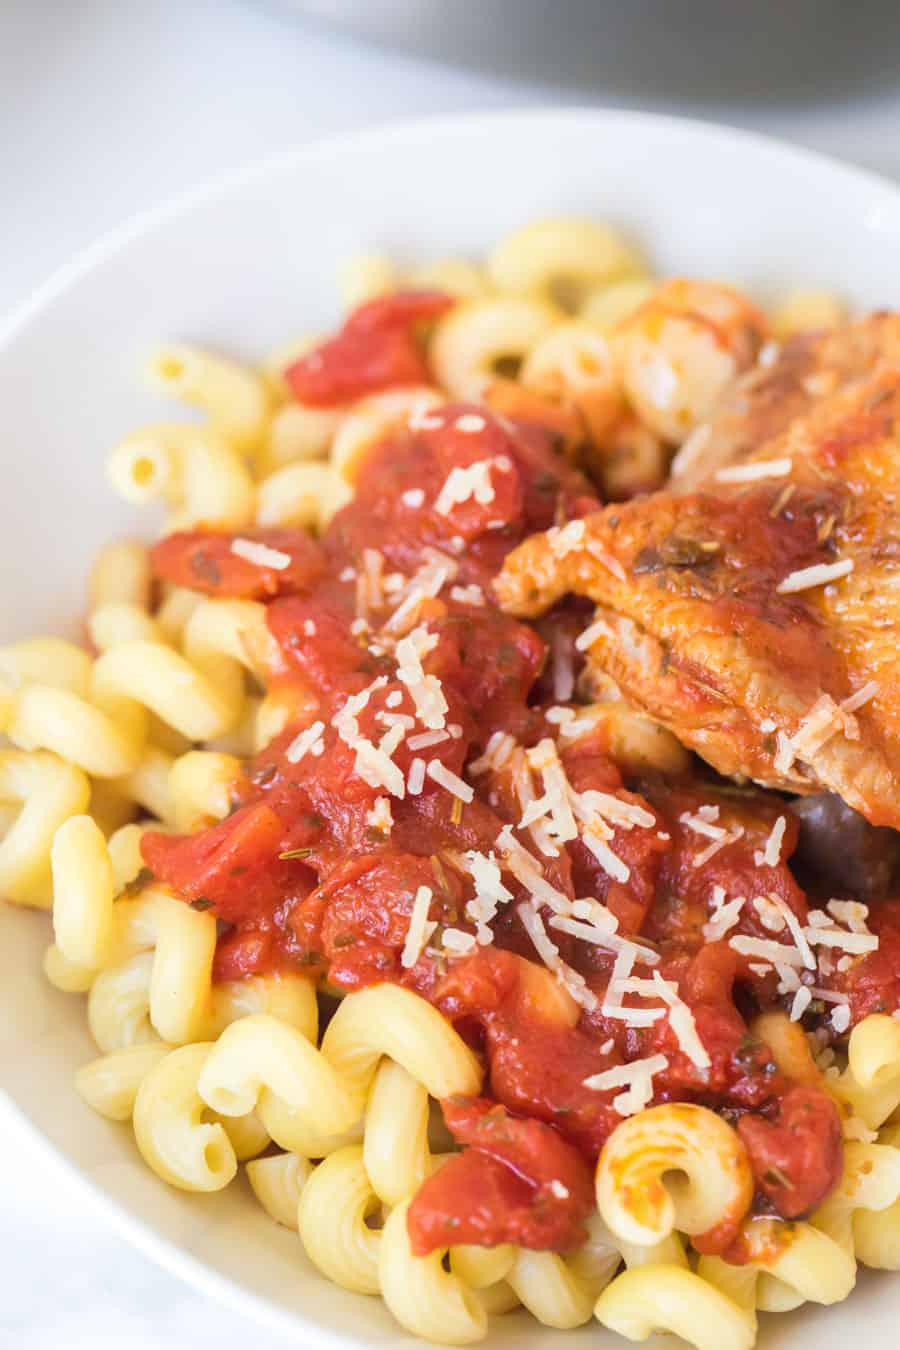 tomato and garlic pasta with chicken thigh in white bowl